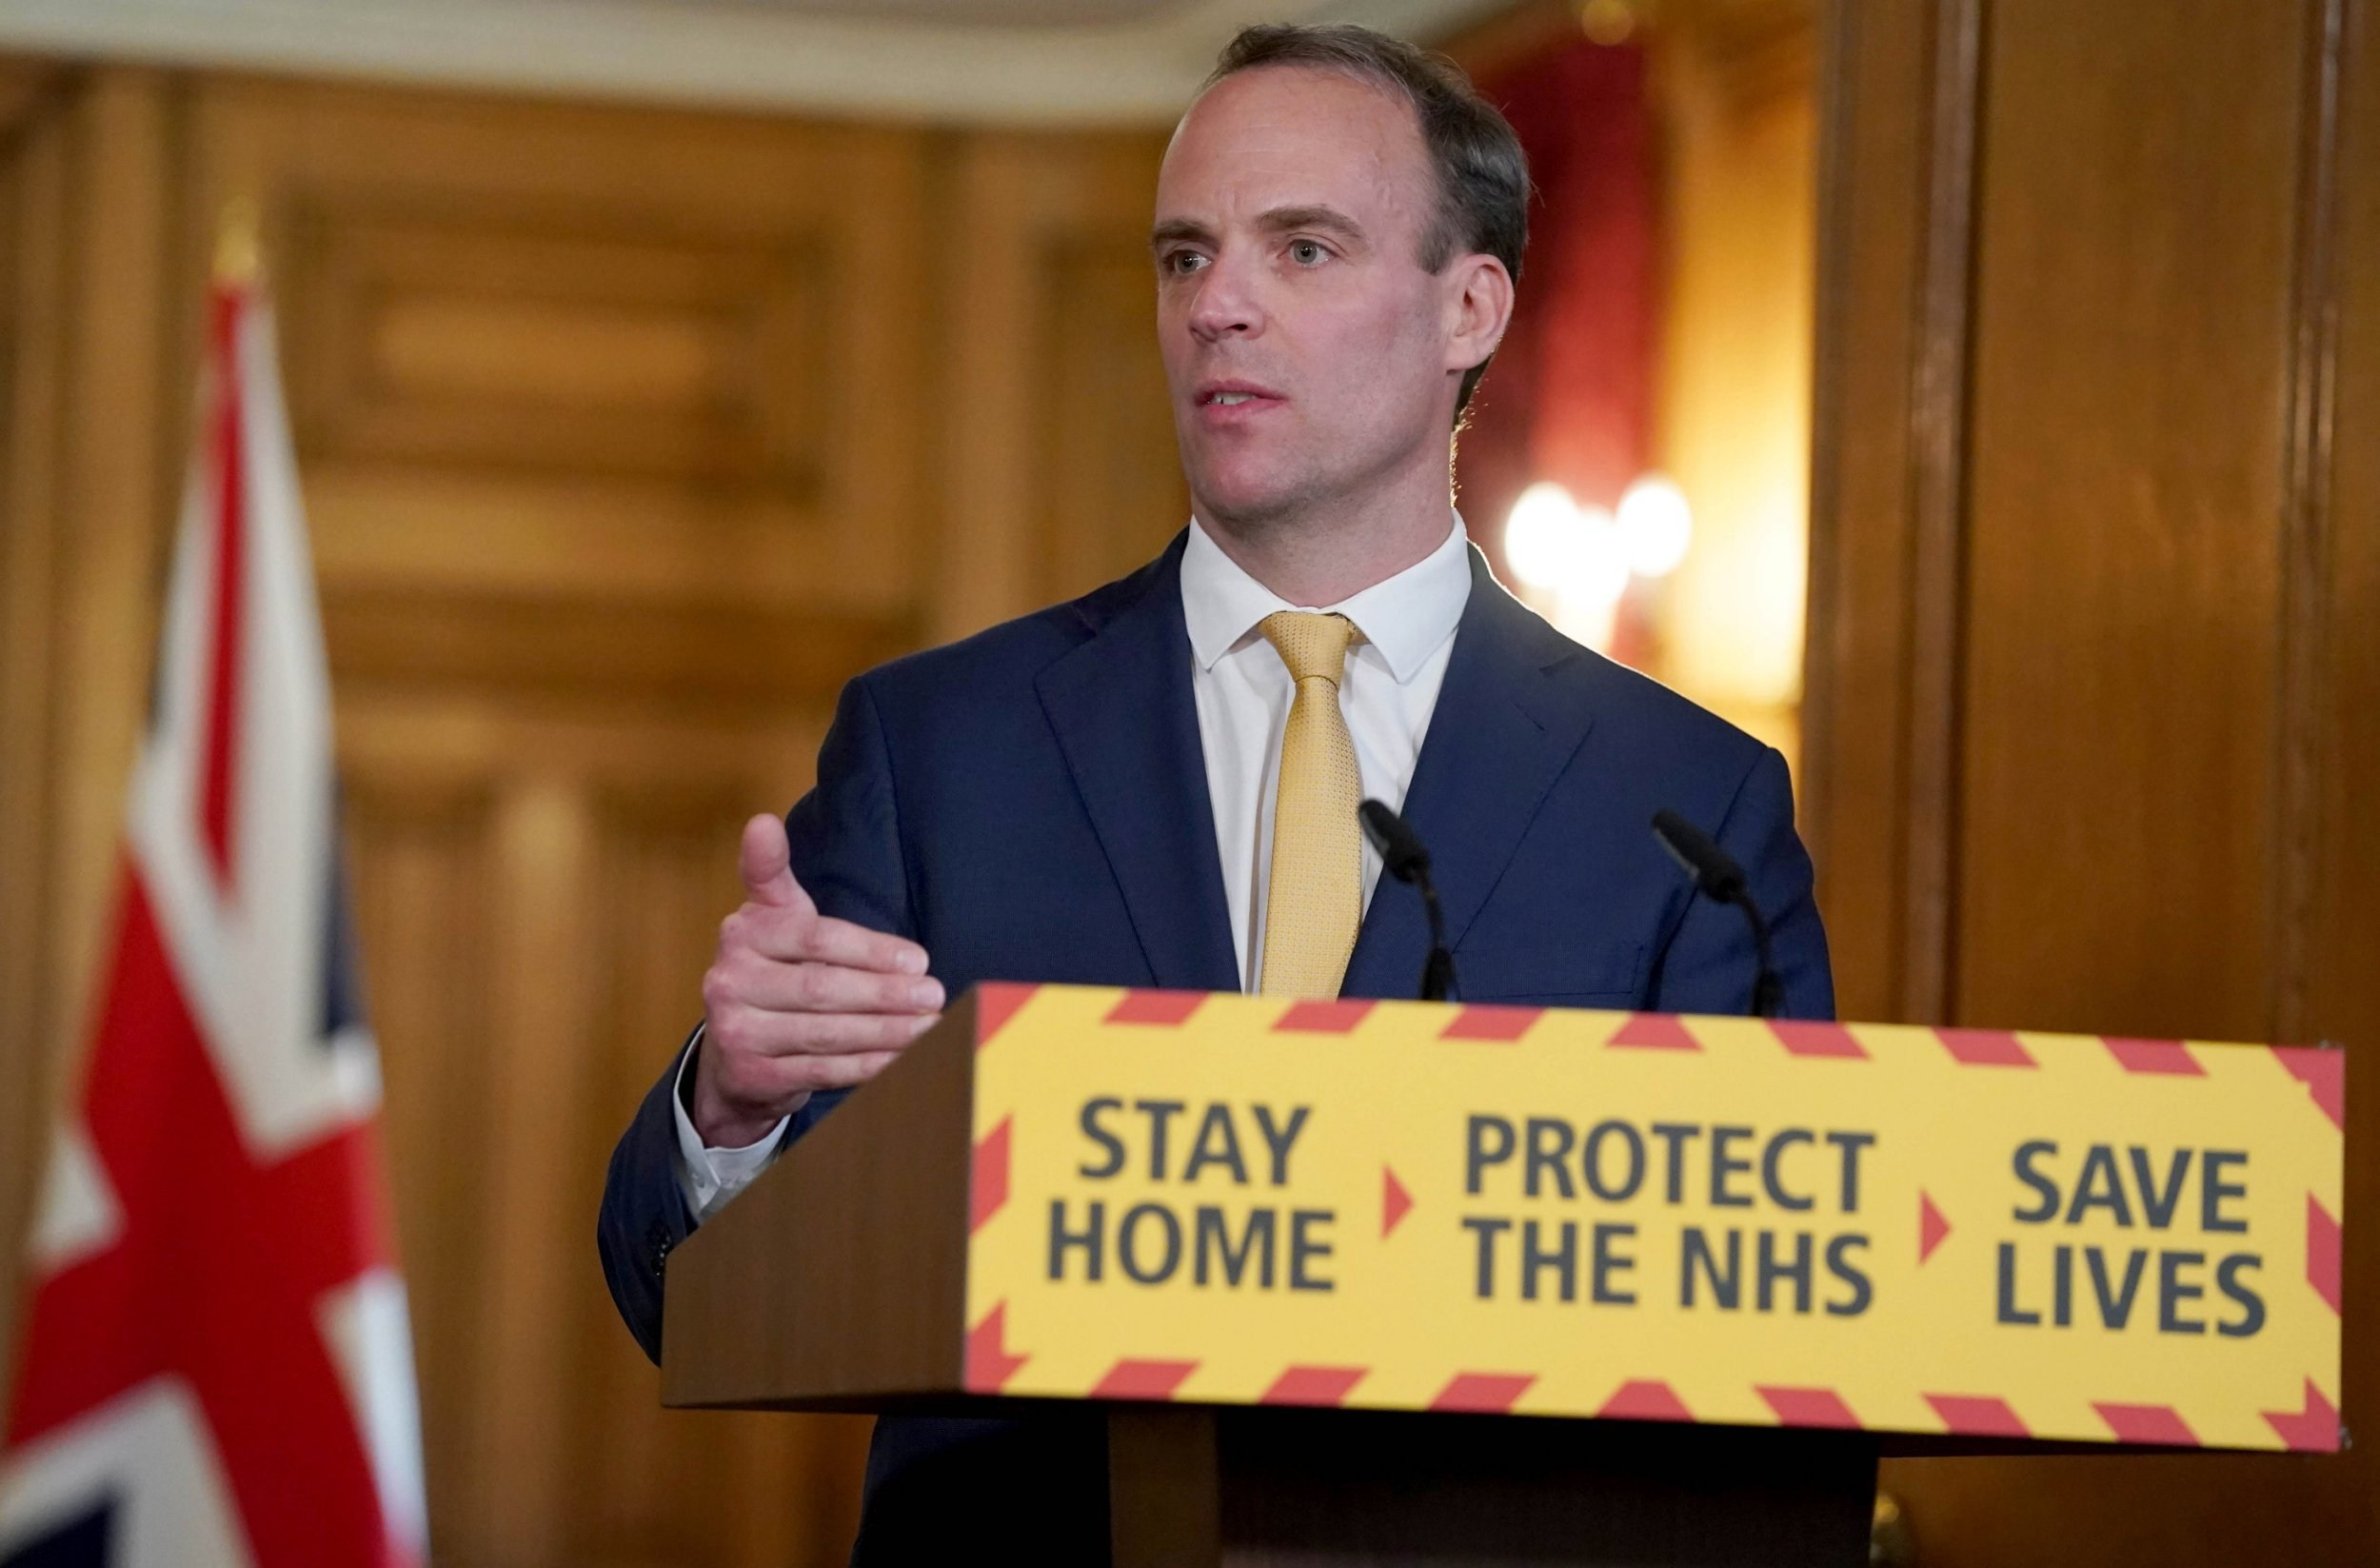 Raab hints at extending lockdown as restrictions are 'not at review stage'